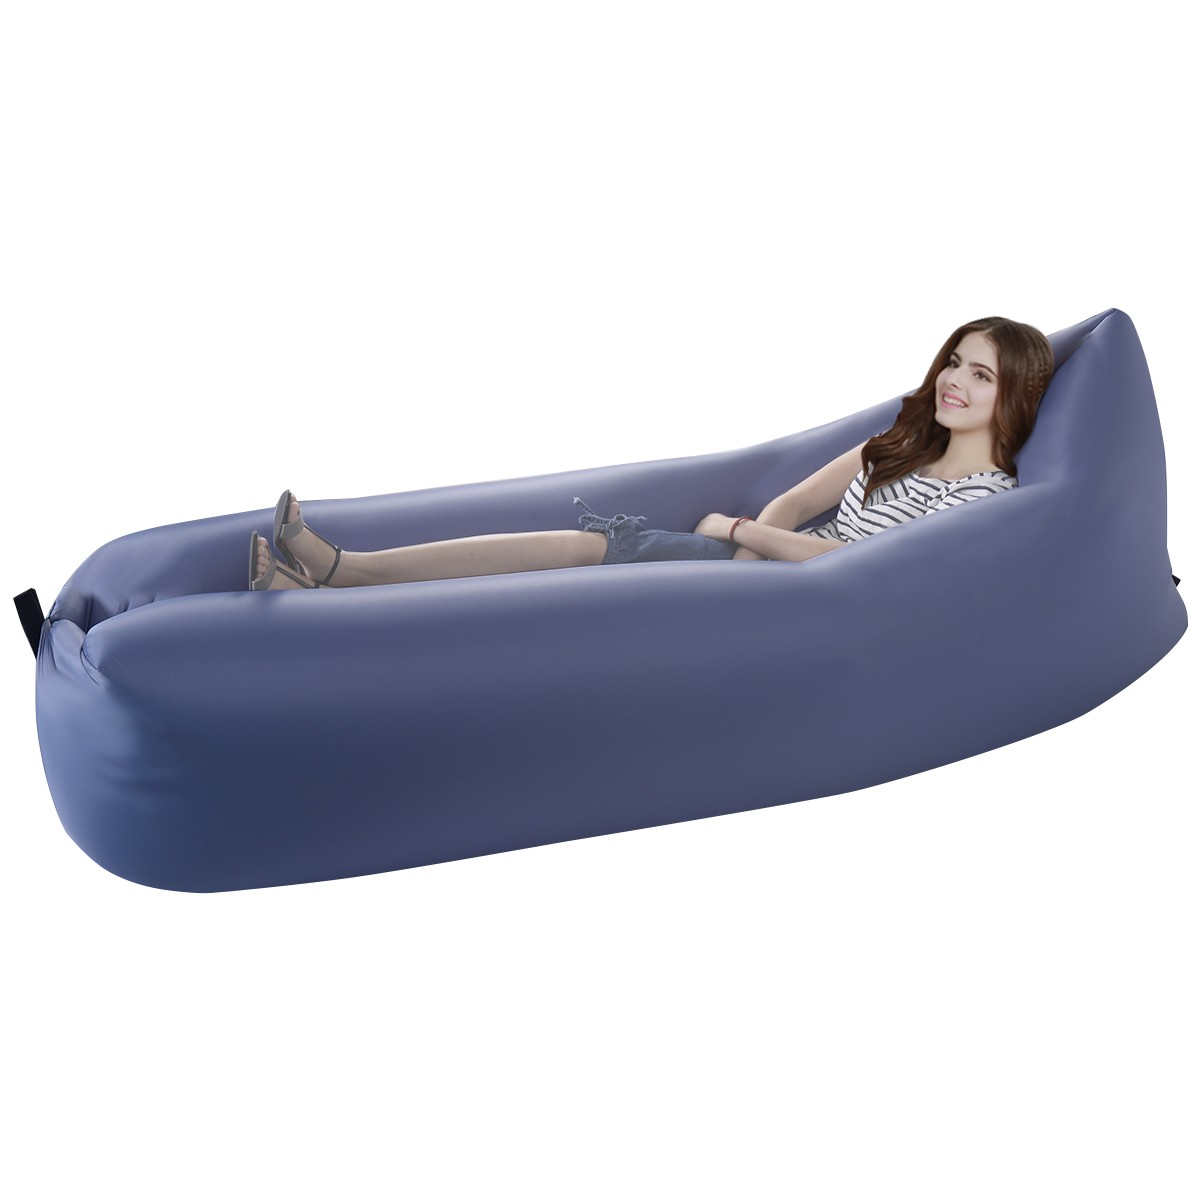 Outdoor Lazy Inflatable Couch Air Sleeping Sofa Lounger